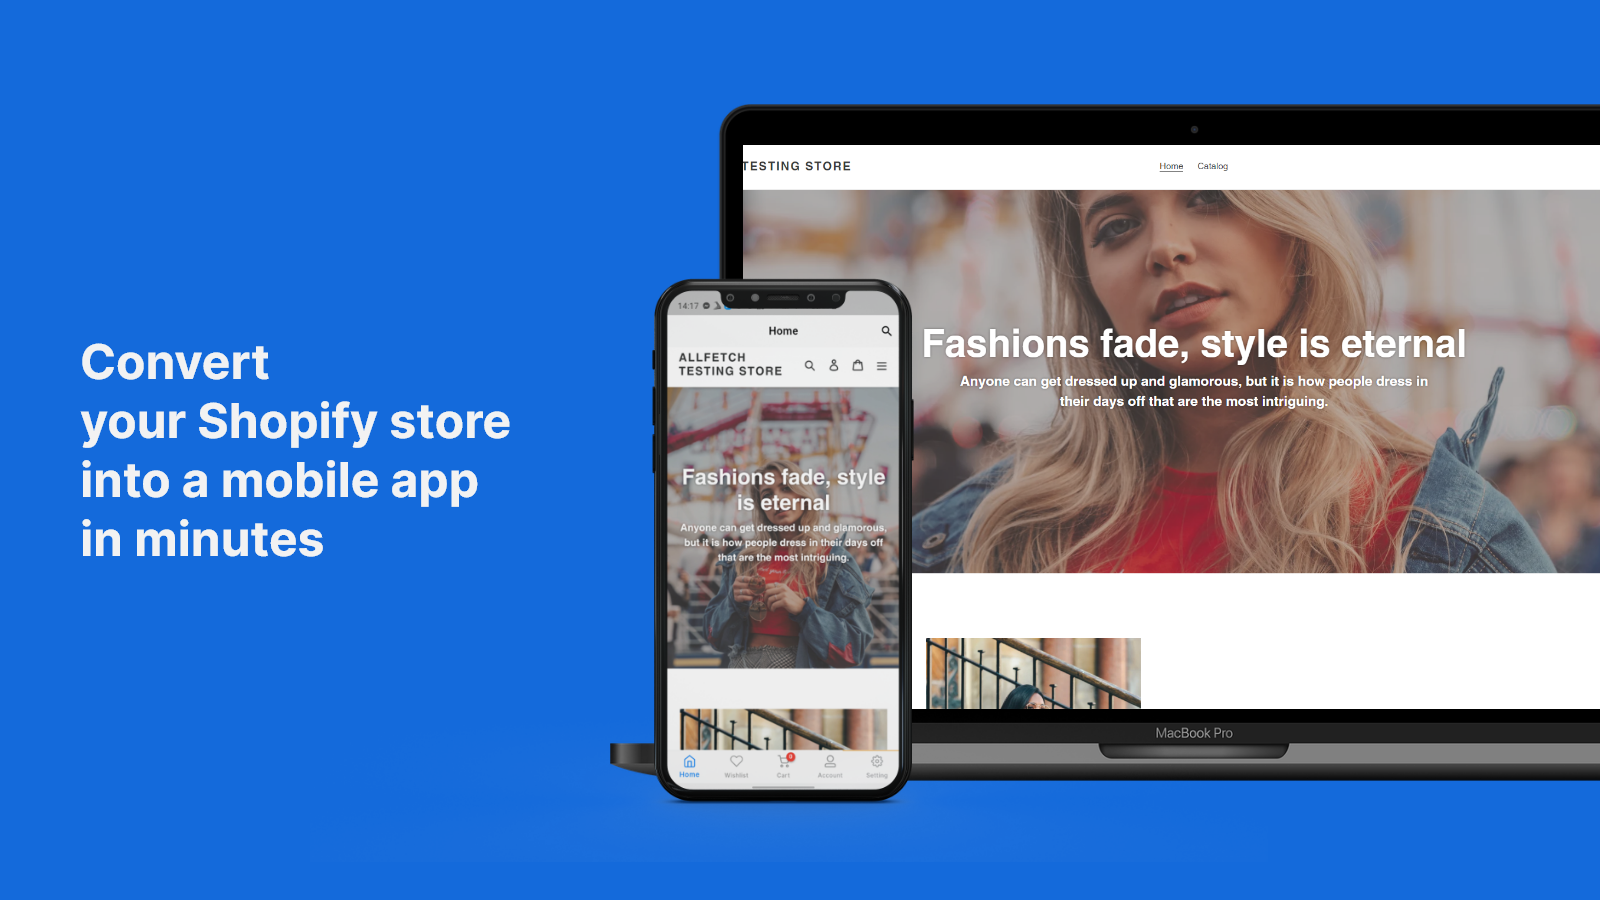 Convert your Shopify store into mobile app in minutes